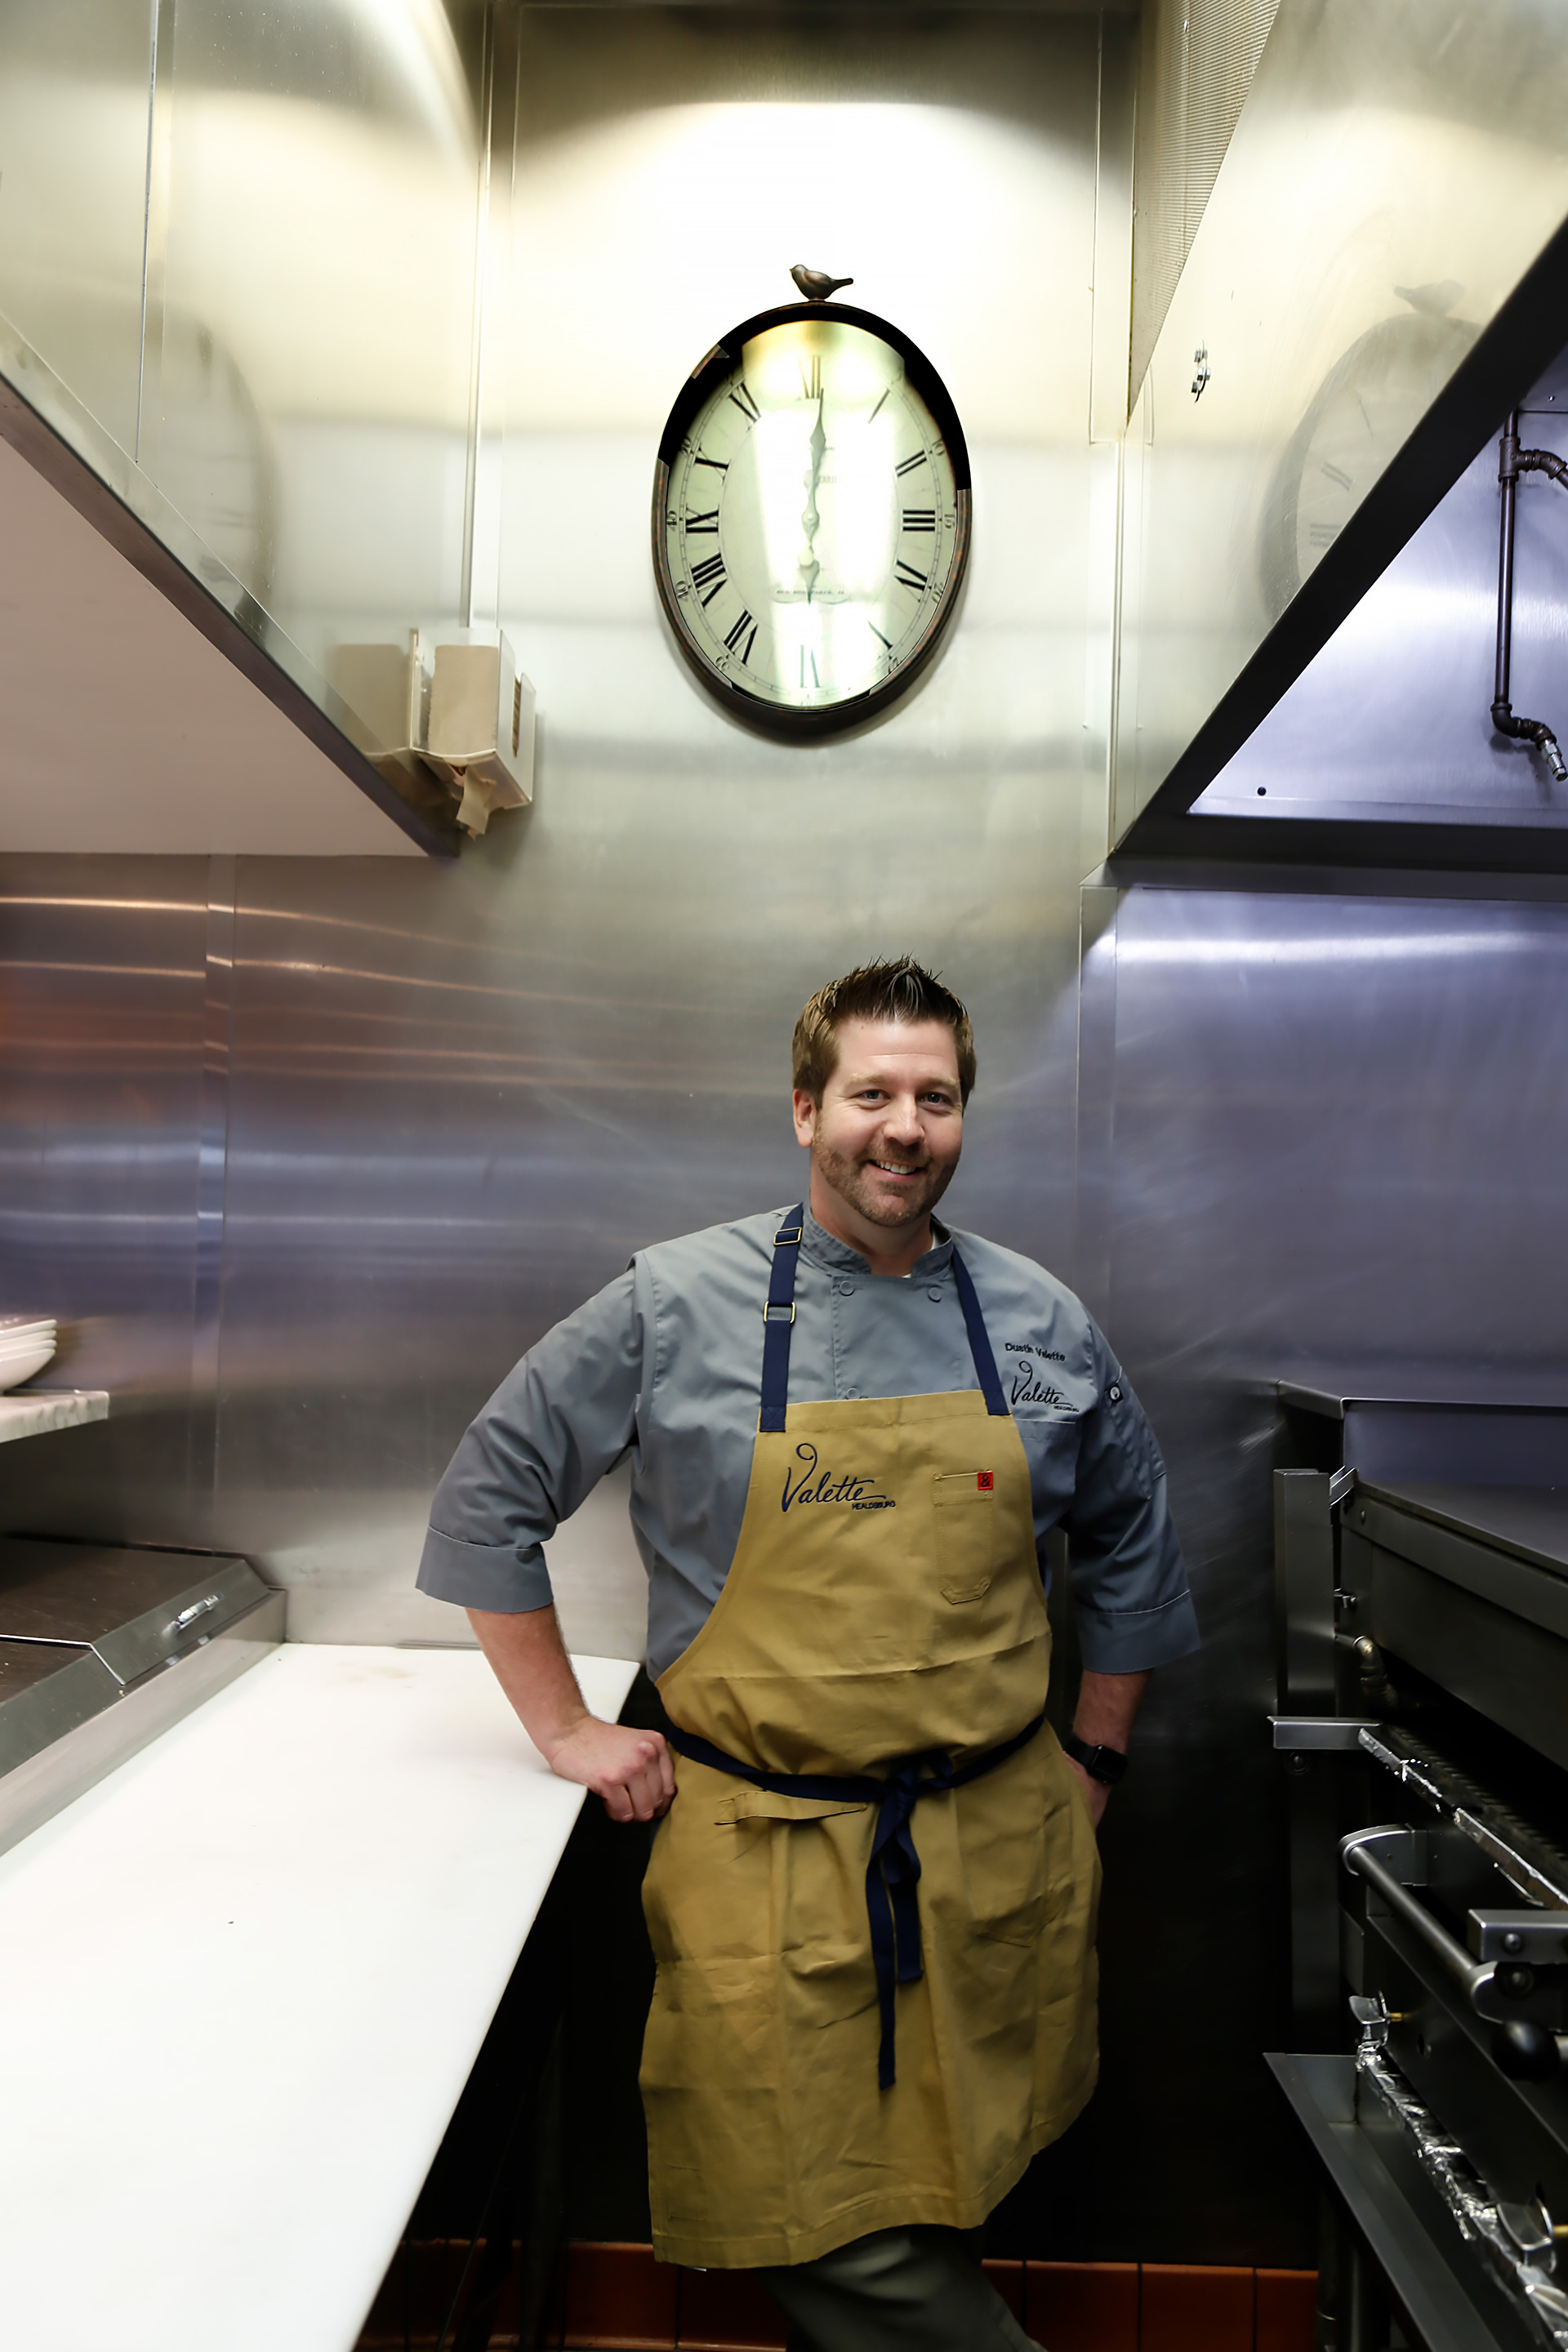 Dustin Valette in the open kitchen at Valette.